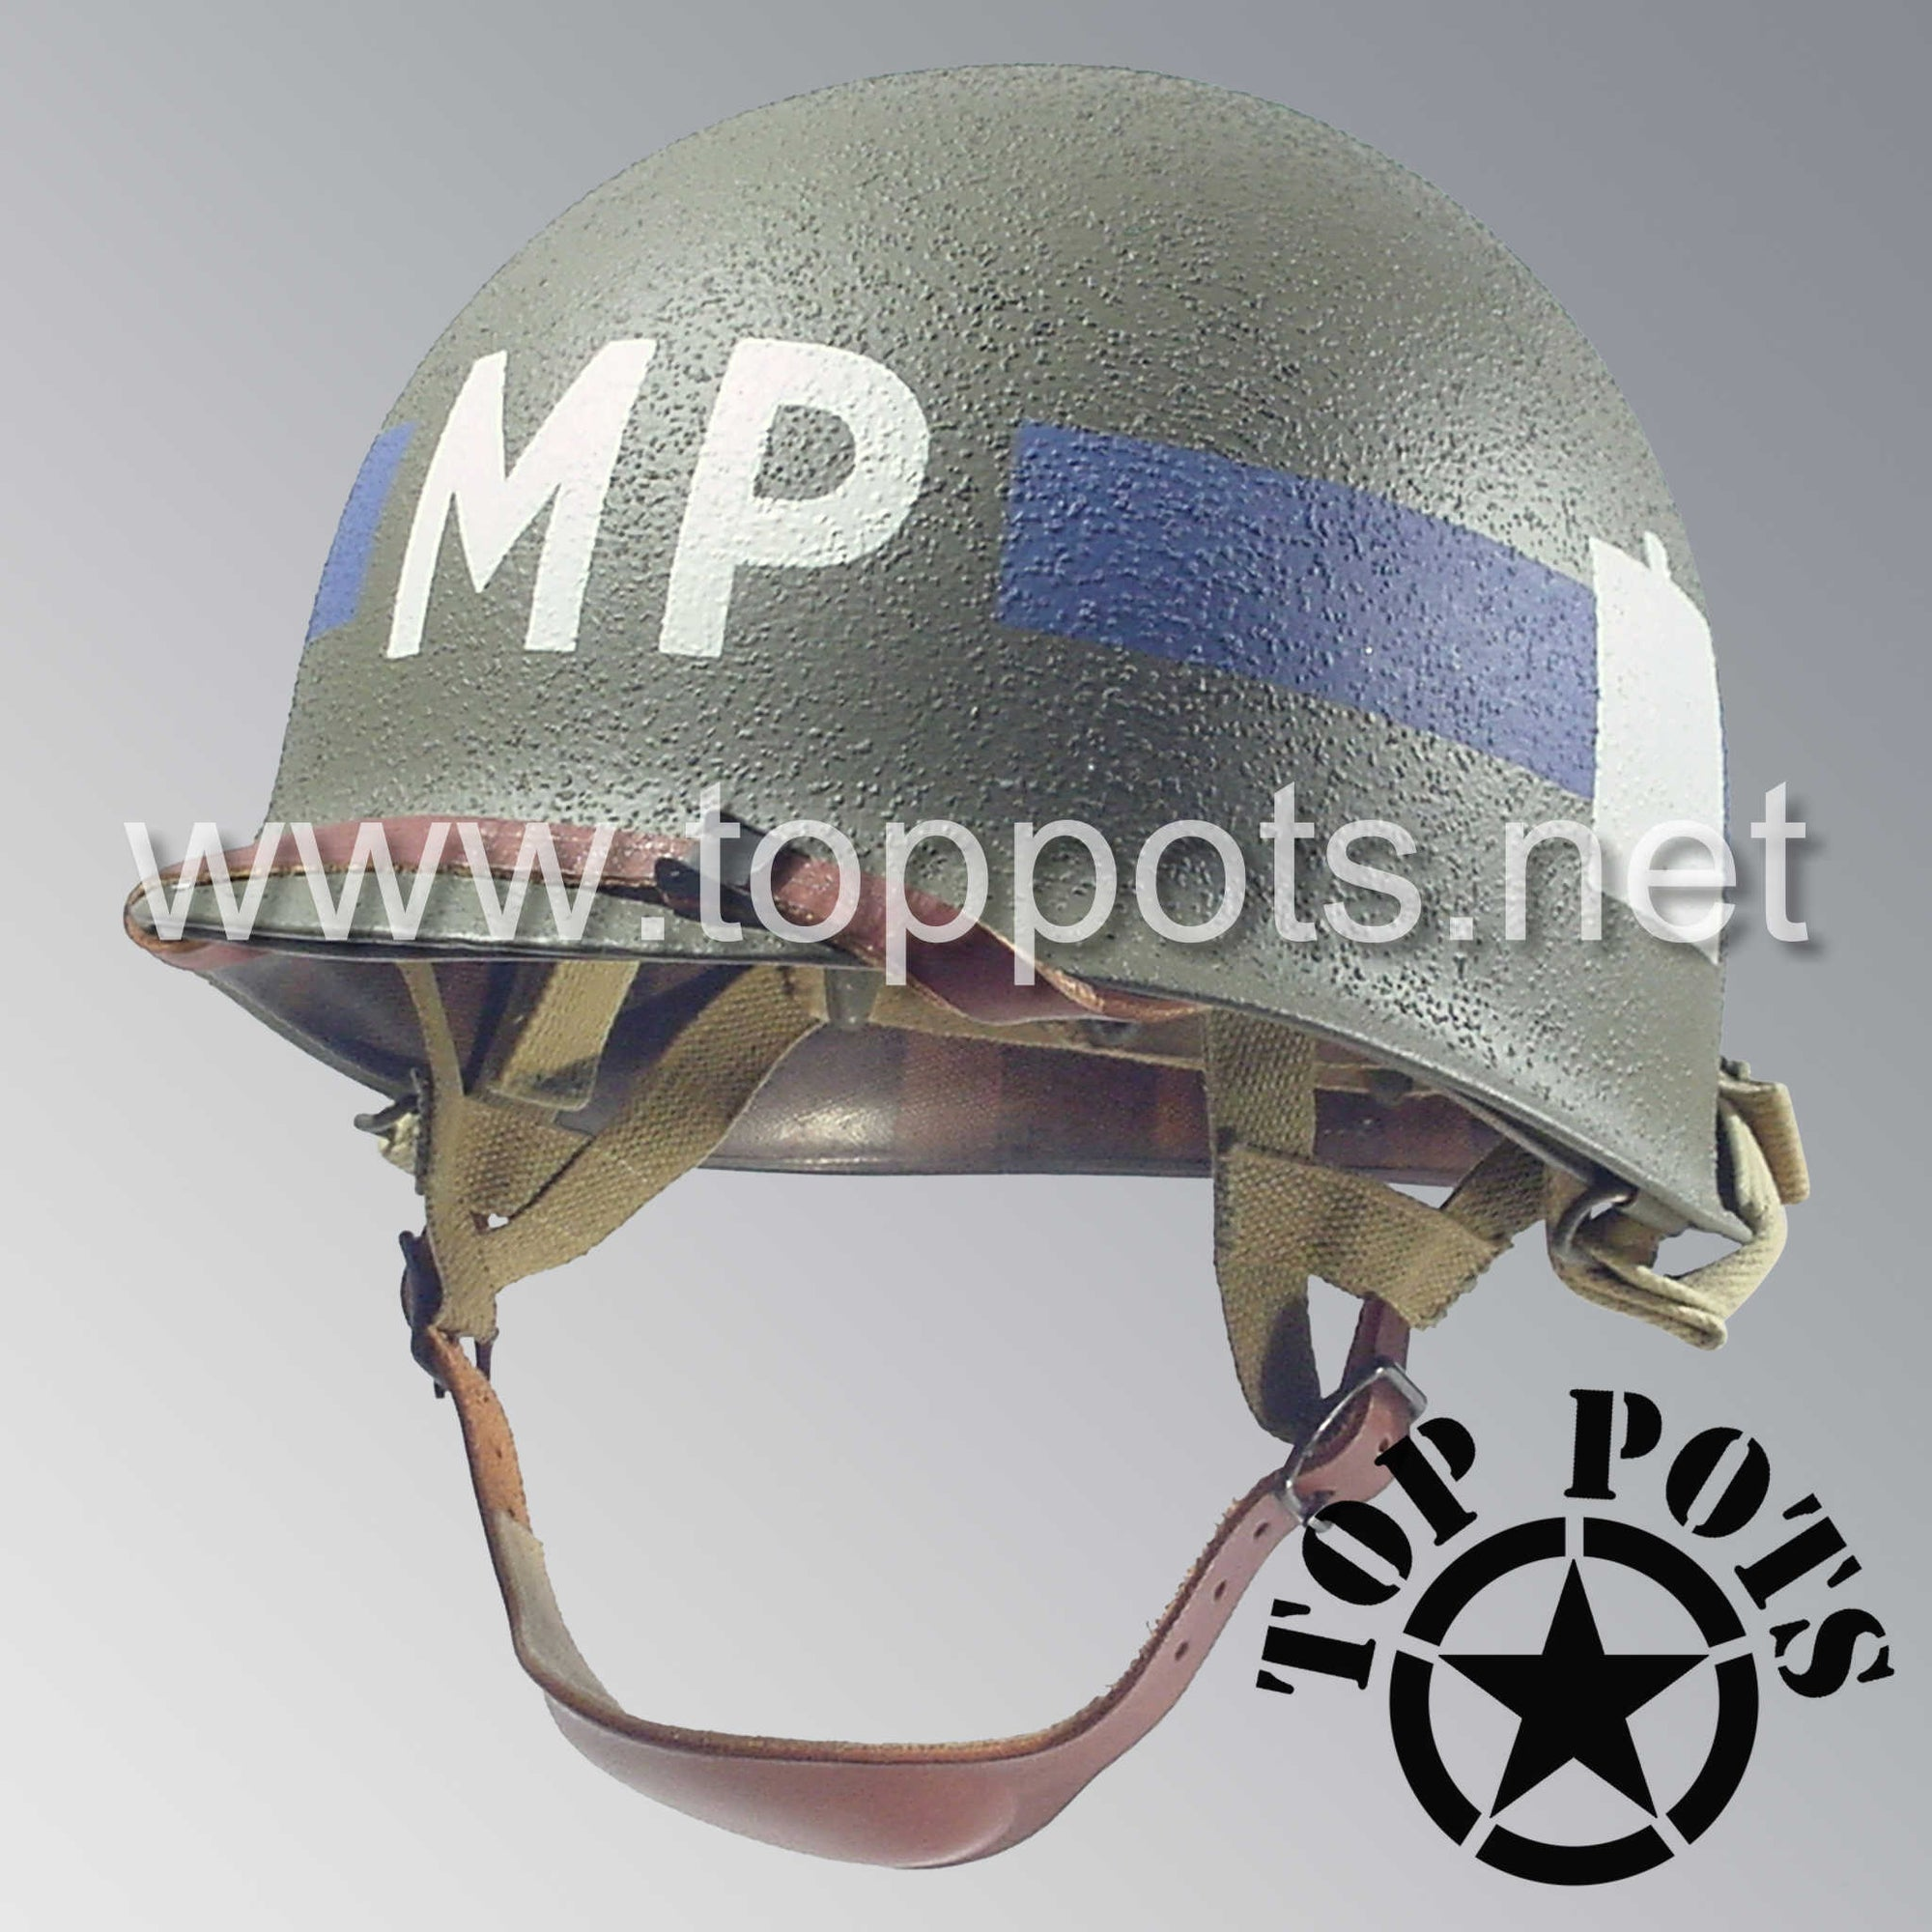 Image 1 of WWII US Army Restored Original M1C Paratrooper Airborne Helmet Swivel Bale Shell and Liner with 101st Airborne Divisional Police Platoon Emblem